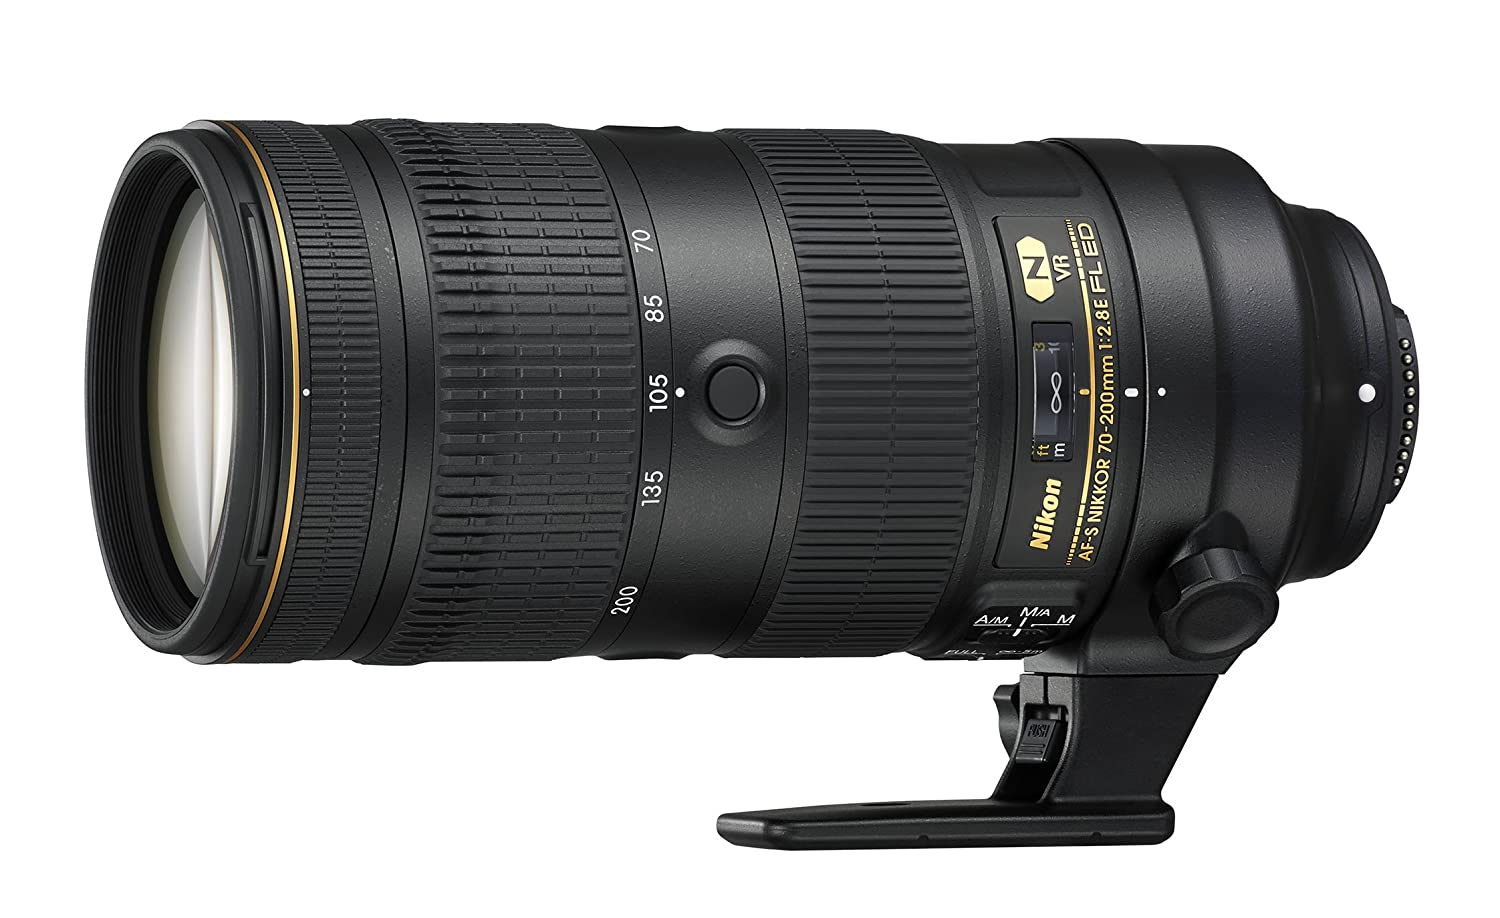 nikon 70-200 2.8 lenses for travel photography. the best photography equipment